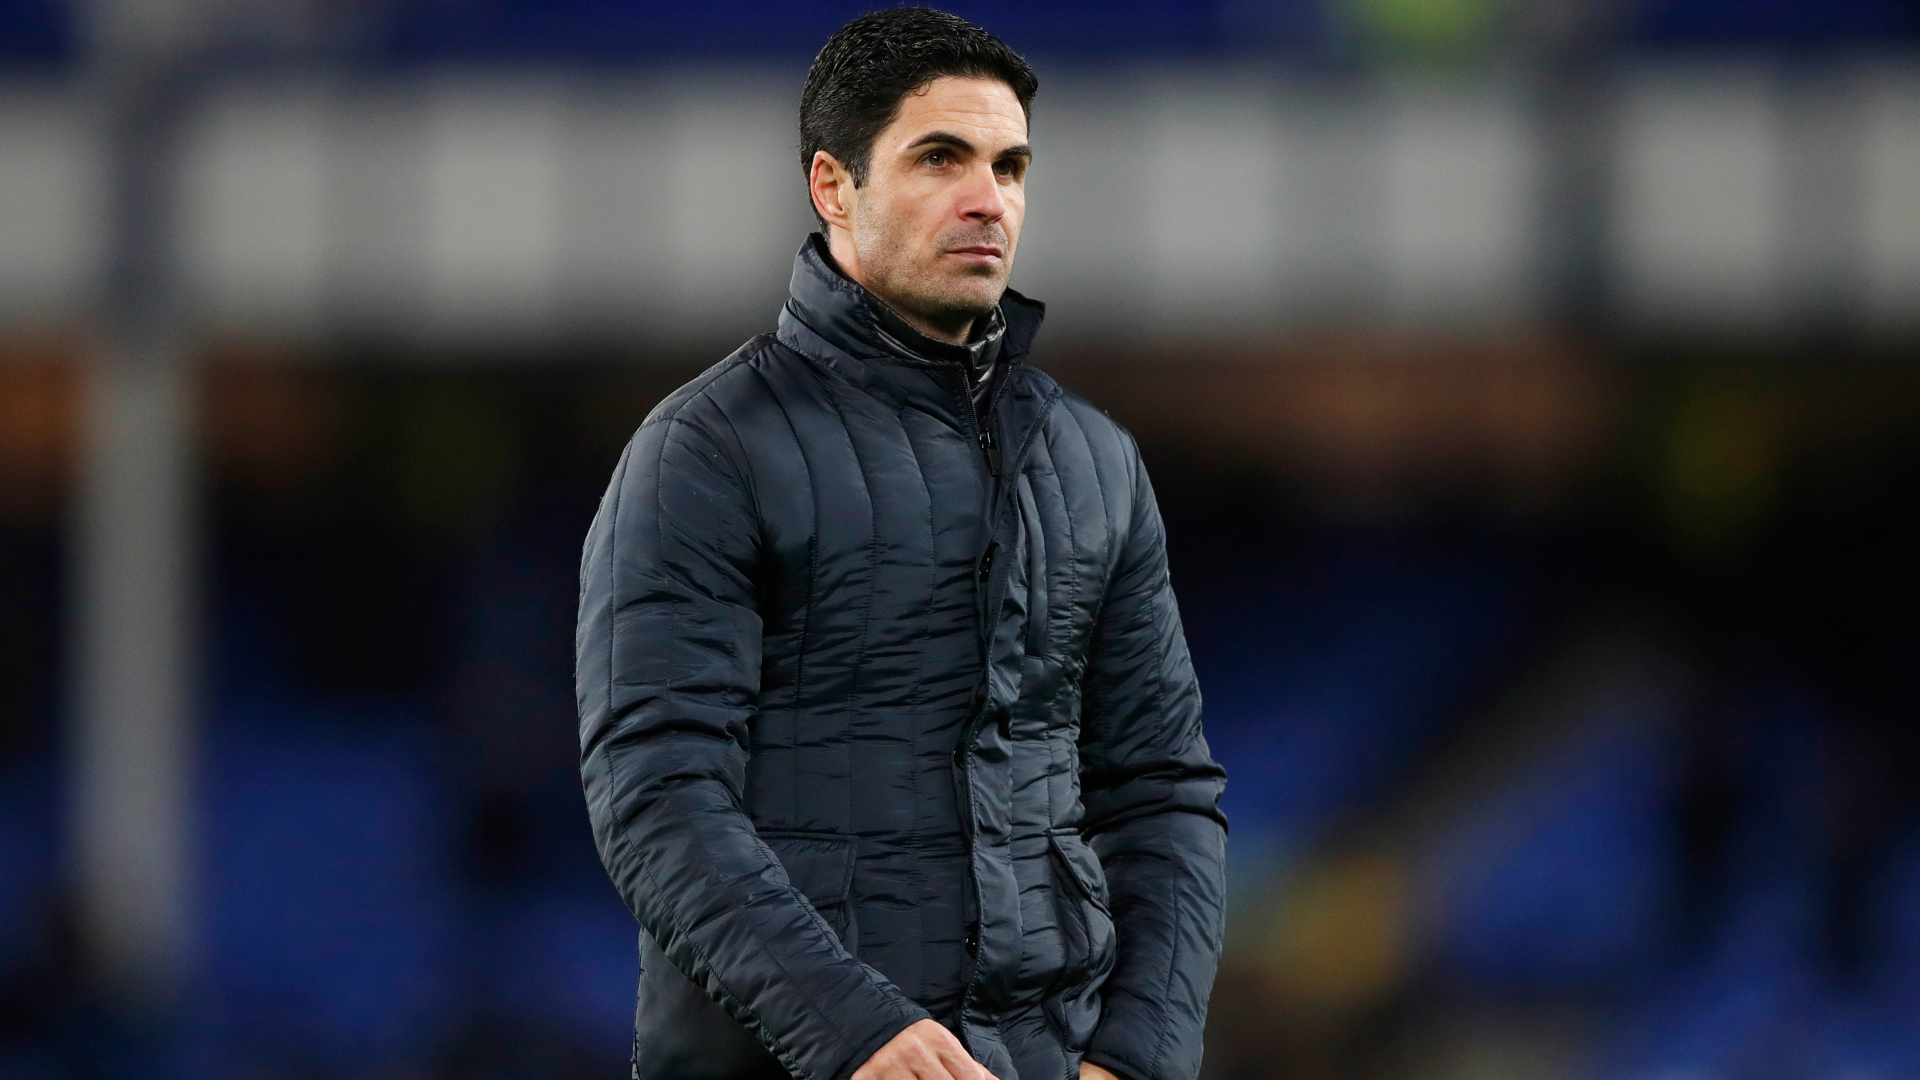 I have fighters – Arteta confident in Arsenal squad as decisive Christmas looms